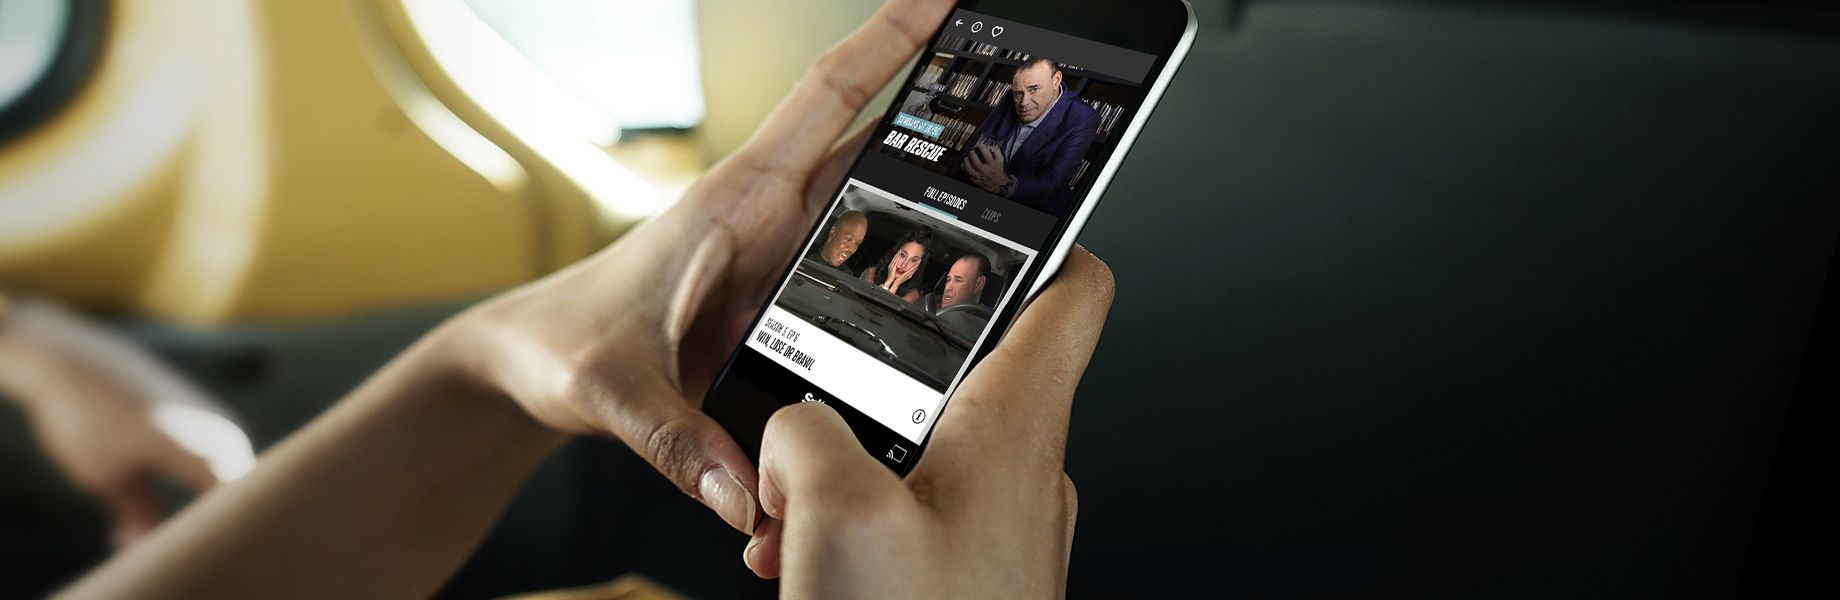 activate your tv app to watch now